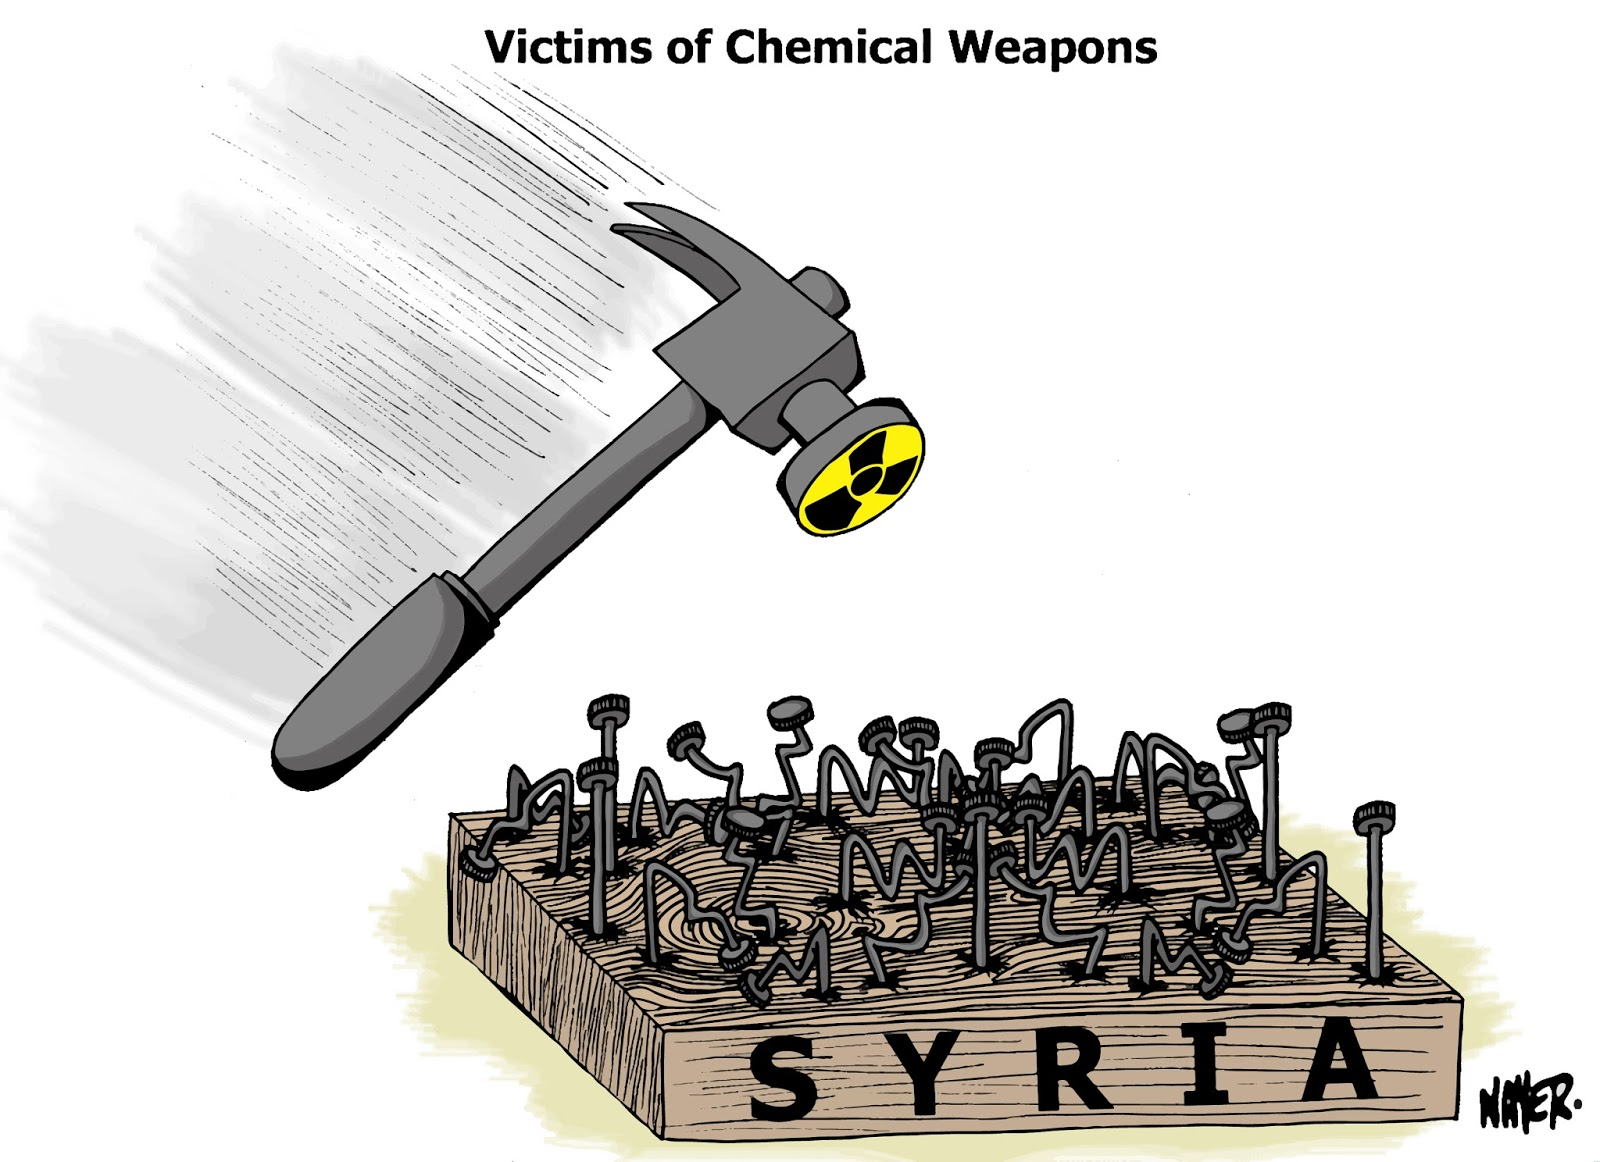 history of chemistry chemical weapons Chemical weapons convention: the chemical weapons convention is a multilateral treaty that bans the development, production, acquisition, stockpiling, transfer, and use of chemical weapons and requires all possessor states to destroy their stockpiles safely.